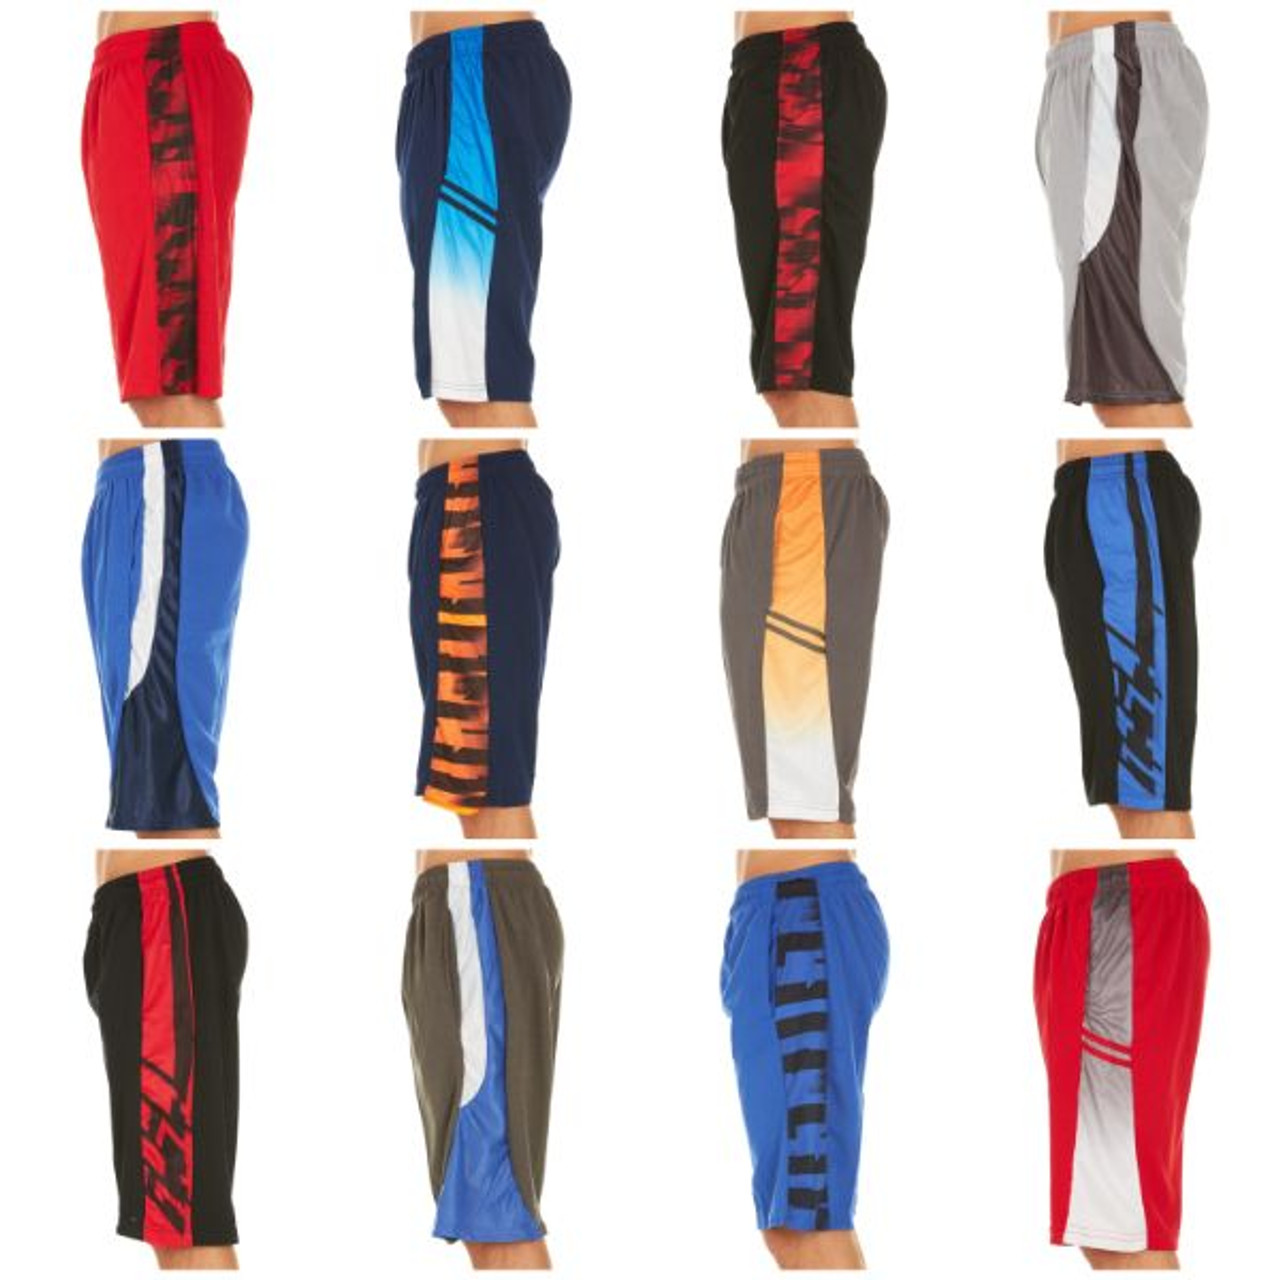 Men's Active Athletic Performance Shorts - 4 Pack